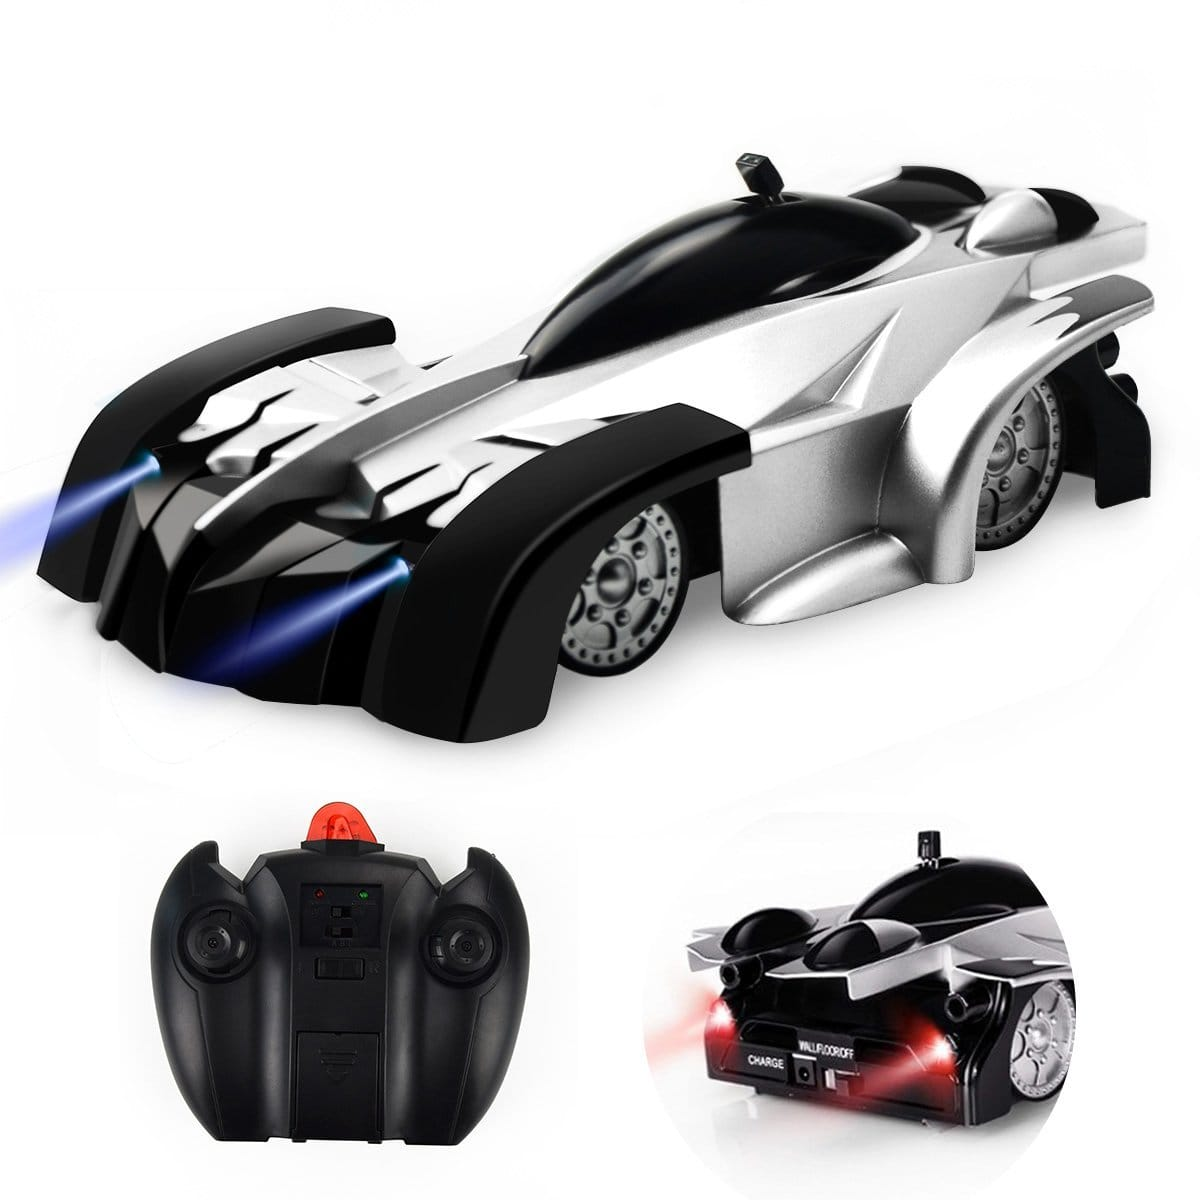 CestMall Remote Control Car, RC Car, Wall Climbing Car + Regular Car Mode, 360°Rotating Stunt Car Toys for Kids, USB or Remote Charging -- $13.79 AC + FREE Prime Shipping